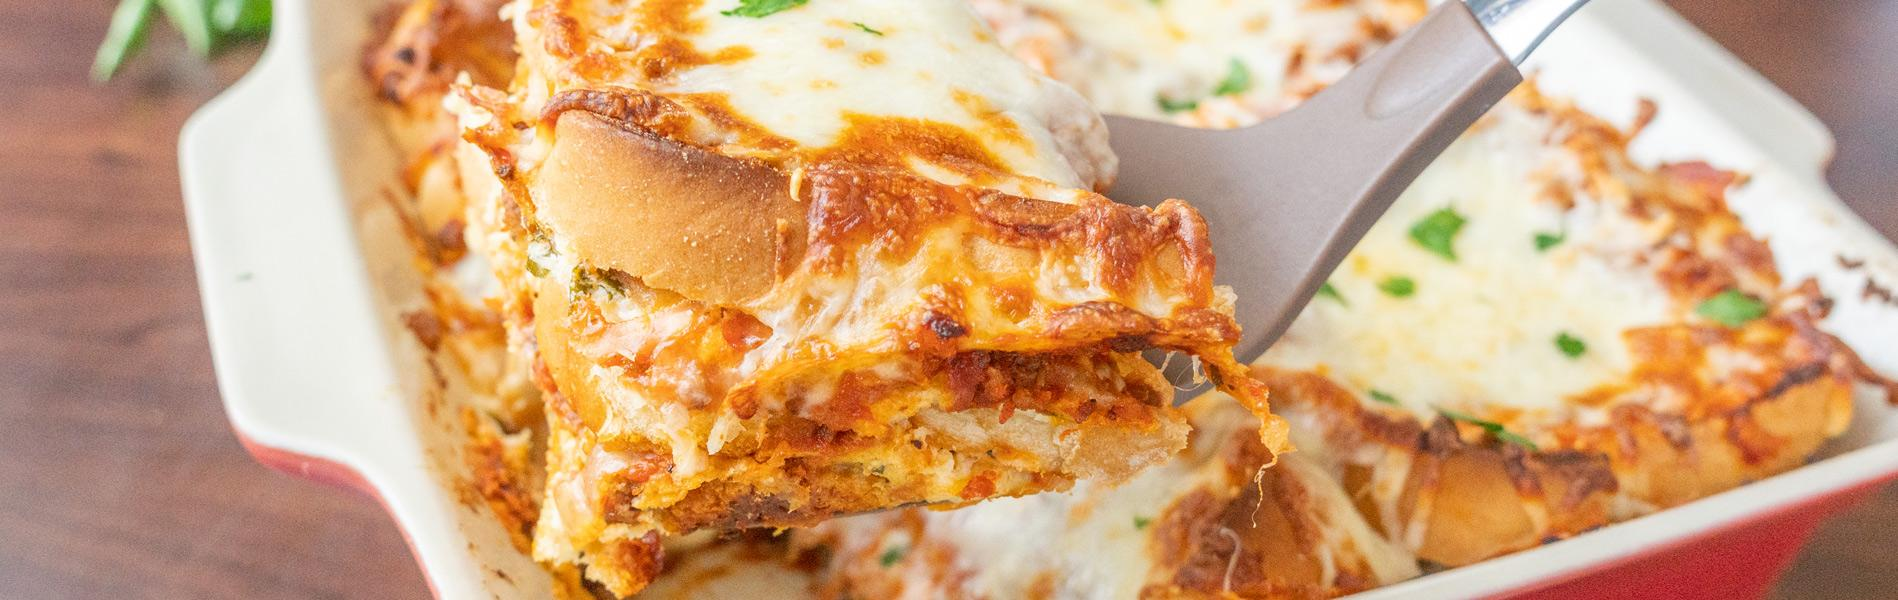 Lasagna made with bread slices, ground beef, Italian sausage, cheese and spices